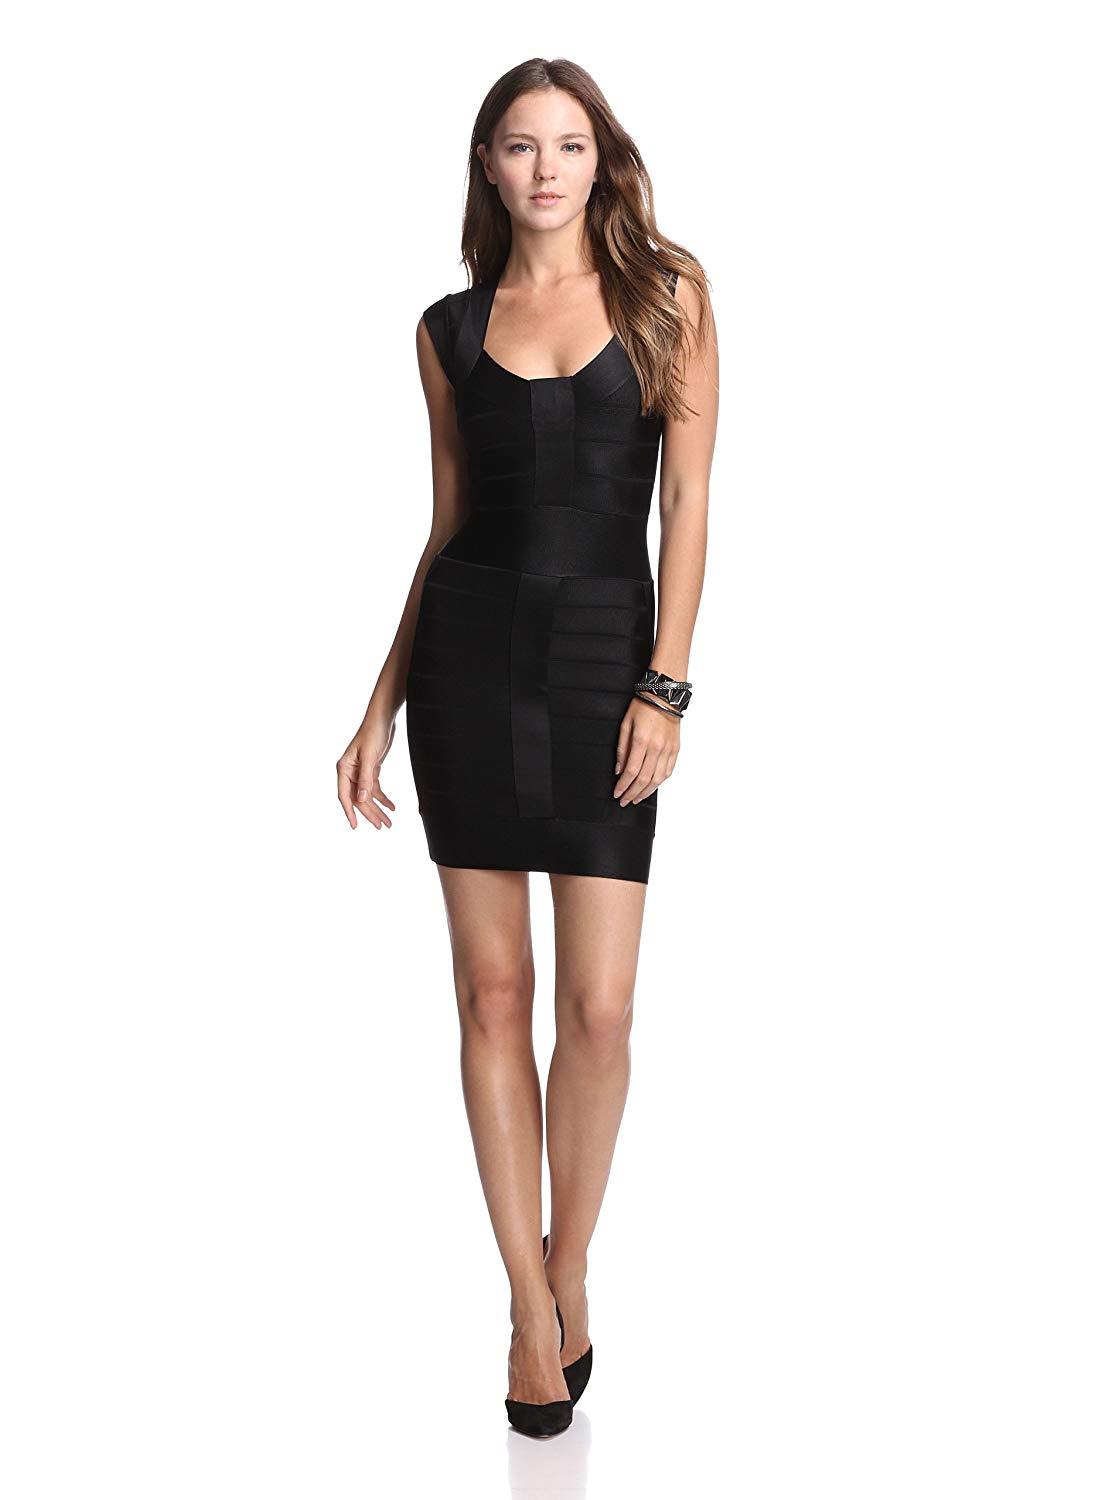 e6ca30c5815 Get Quotations · French Connection Black Spotlight Bandage Sleeveless  Stretch Knit Dress $188 LBD